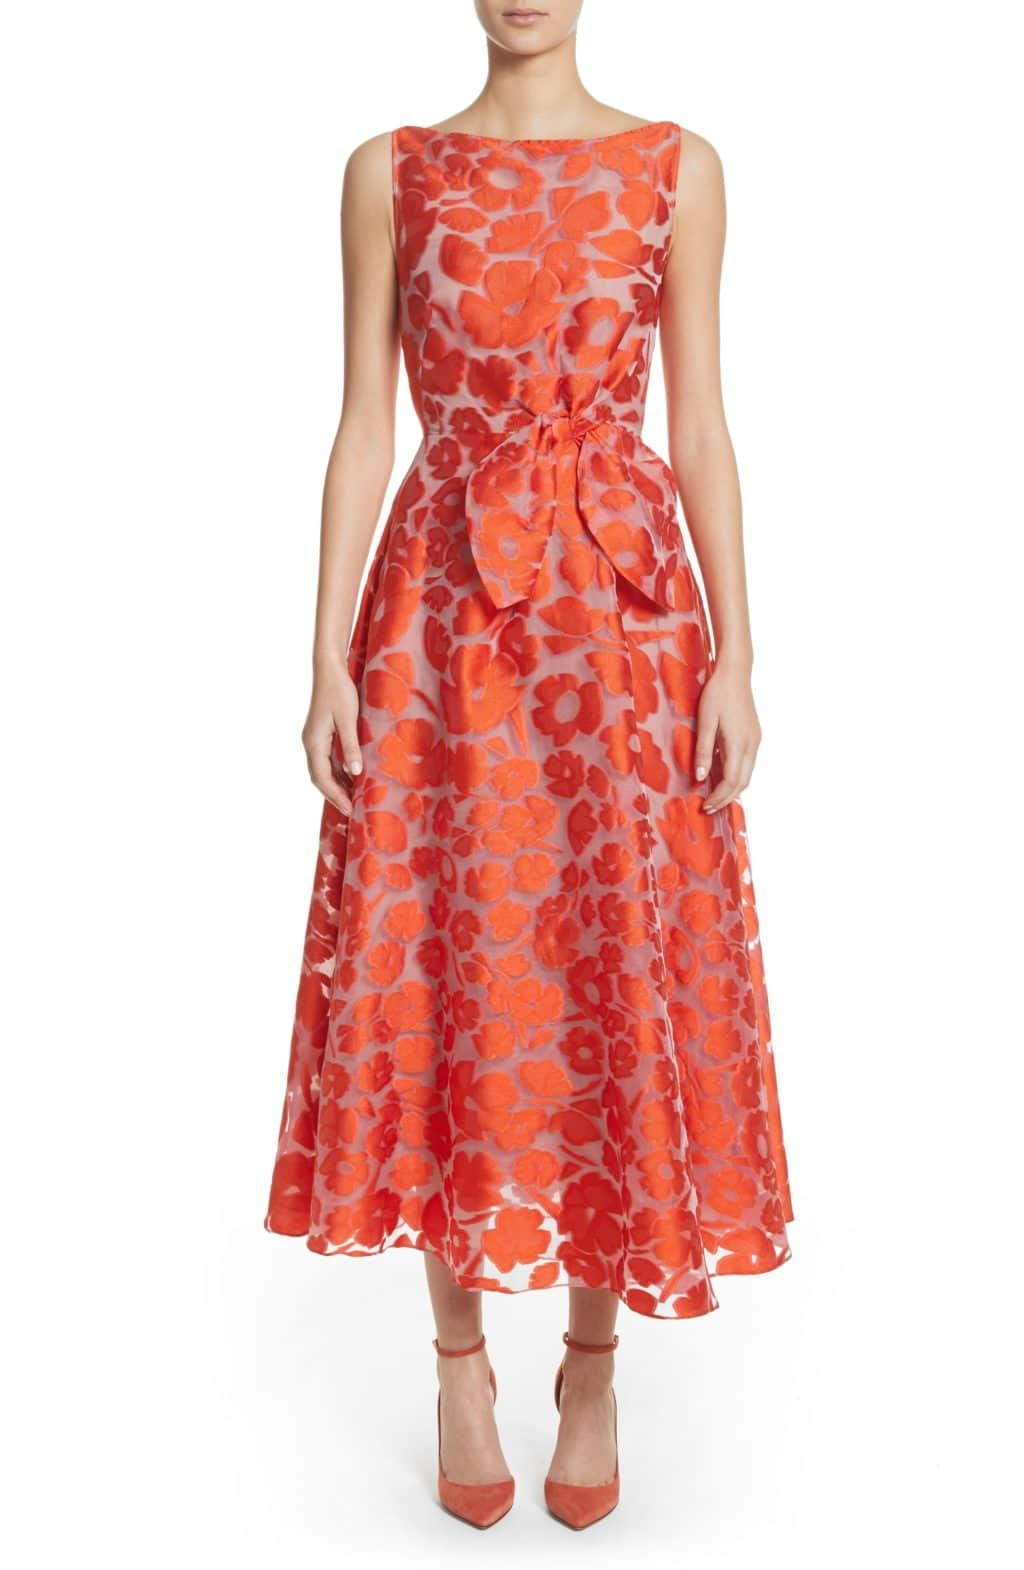 61afd14e5d A garden of gorgeous fil coupé flowers is in full bloom across a  classically elegant tea-length dress that s nipped at the waist with a  charming bow.47